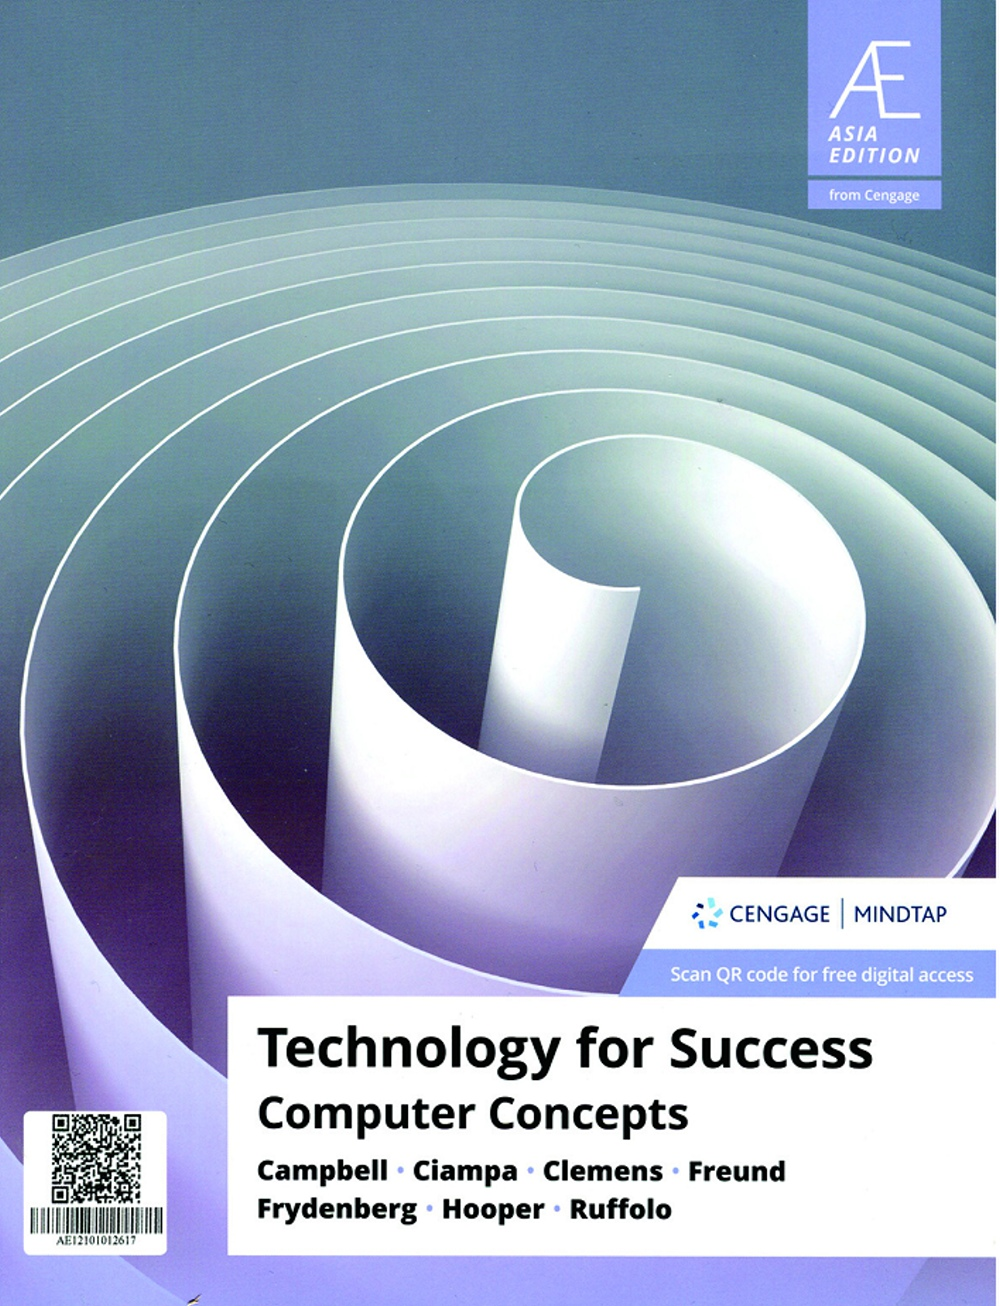 Technology for Success: Computer Concepts (Asia Edition)